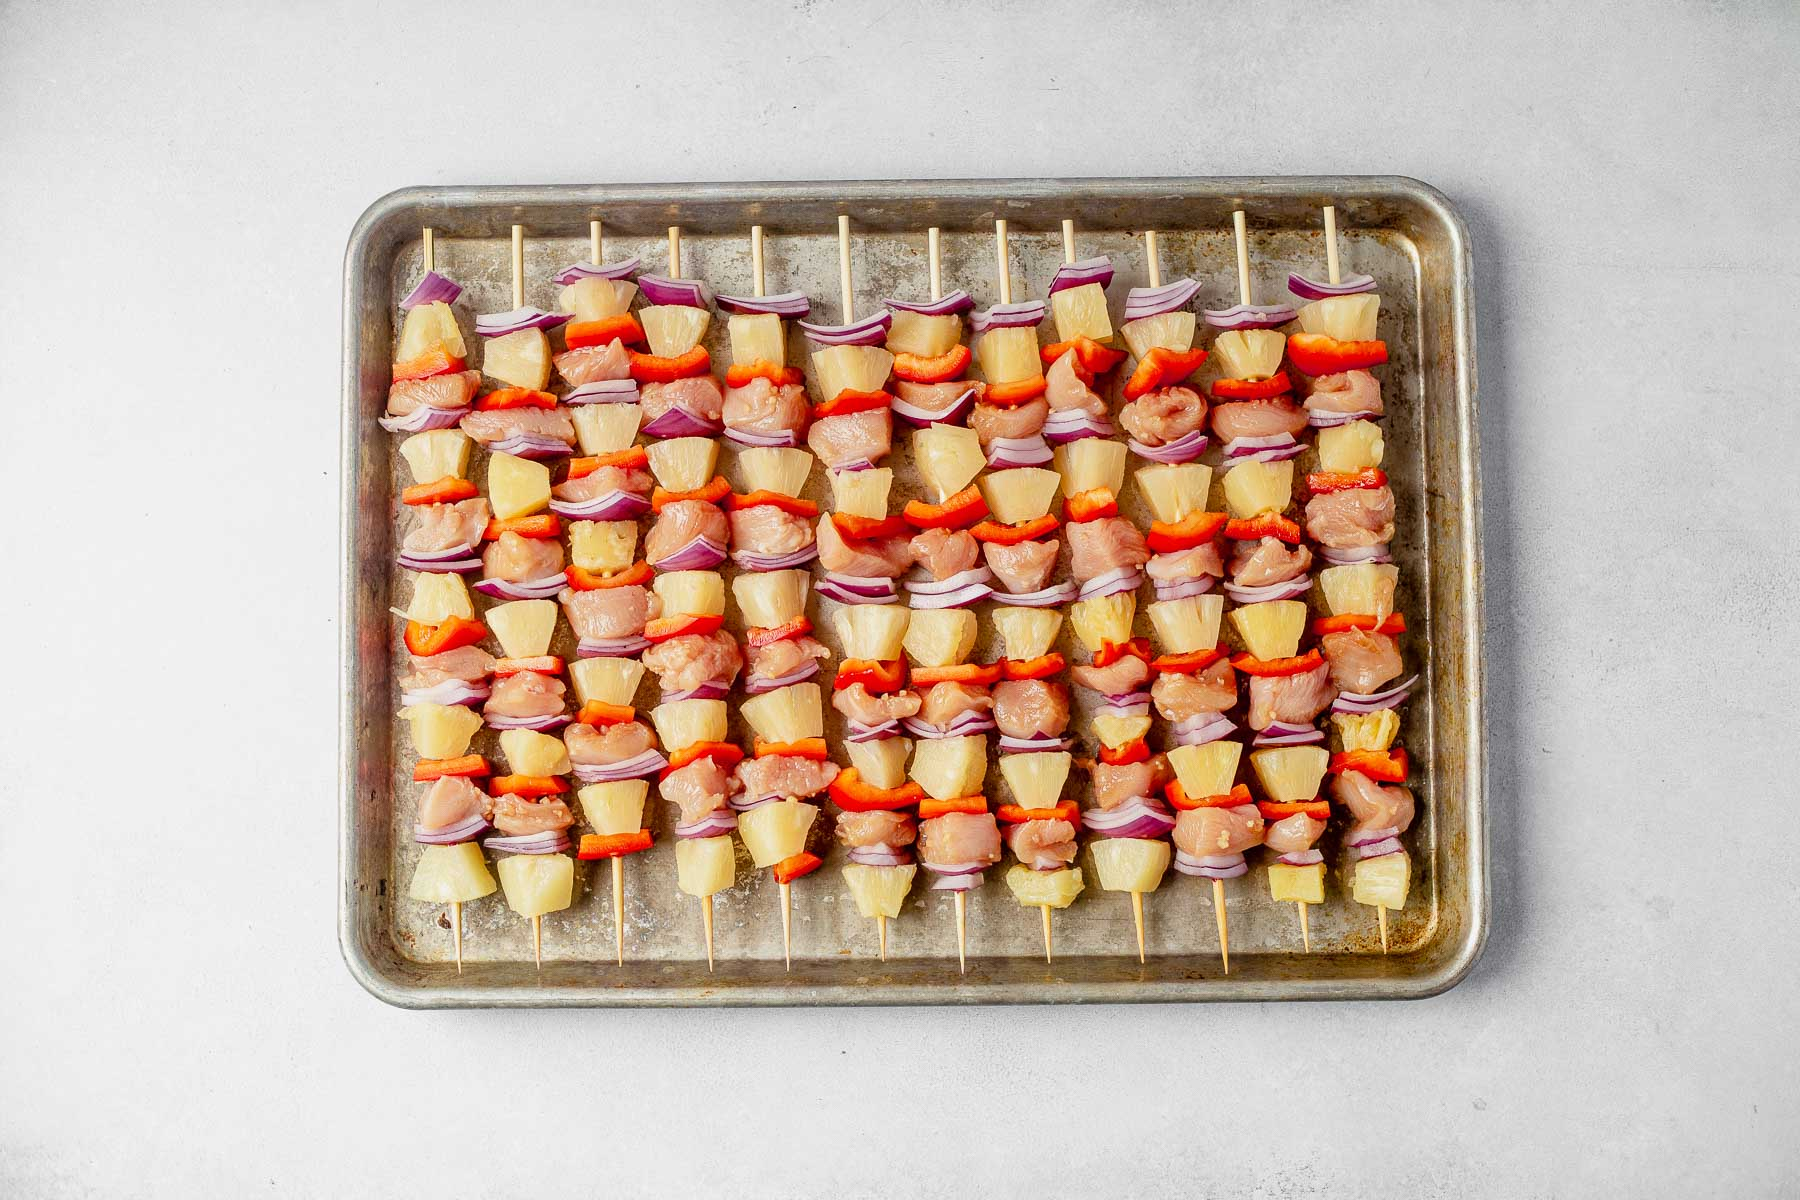 uncooked hawaiian chicken kabobs lined up on a sheet pan before cooking